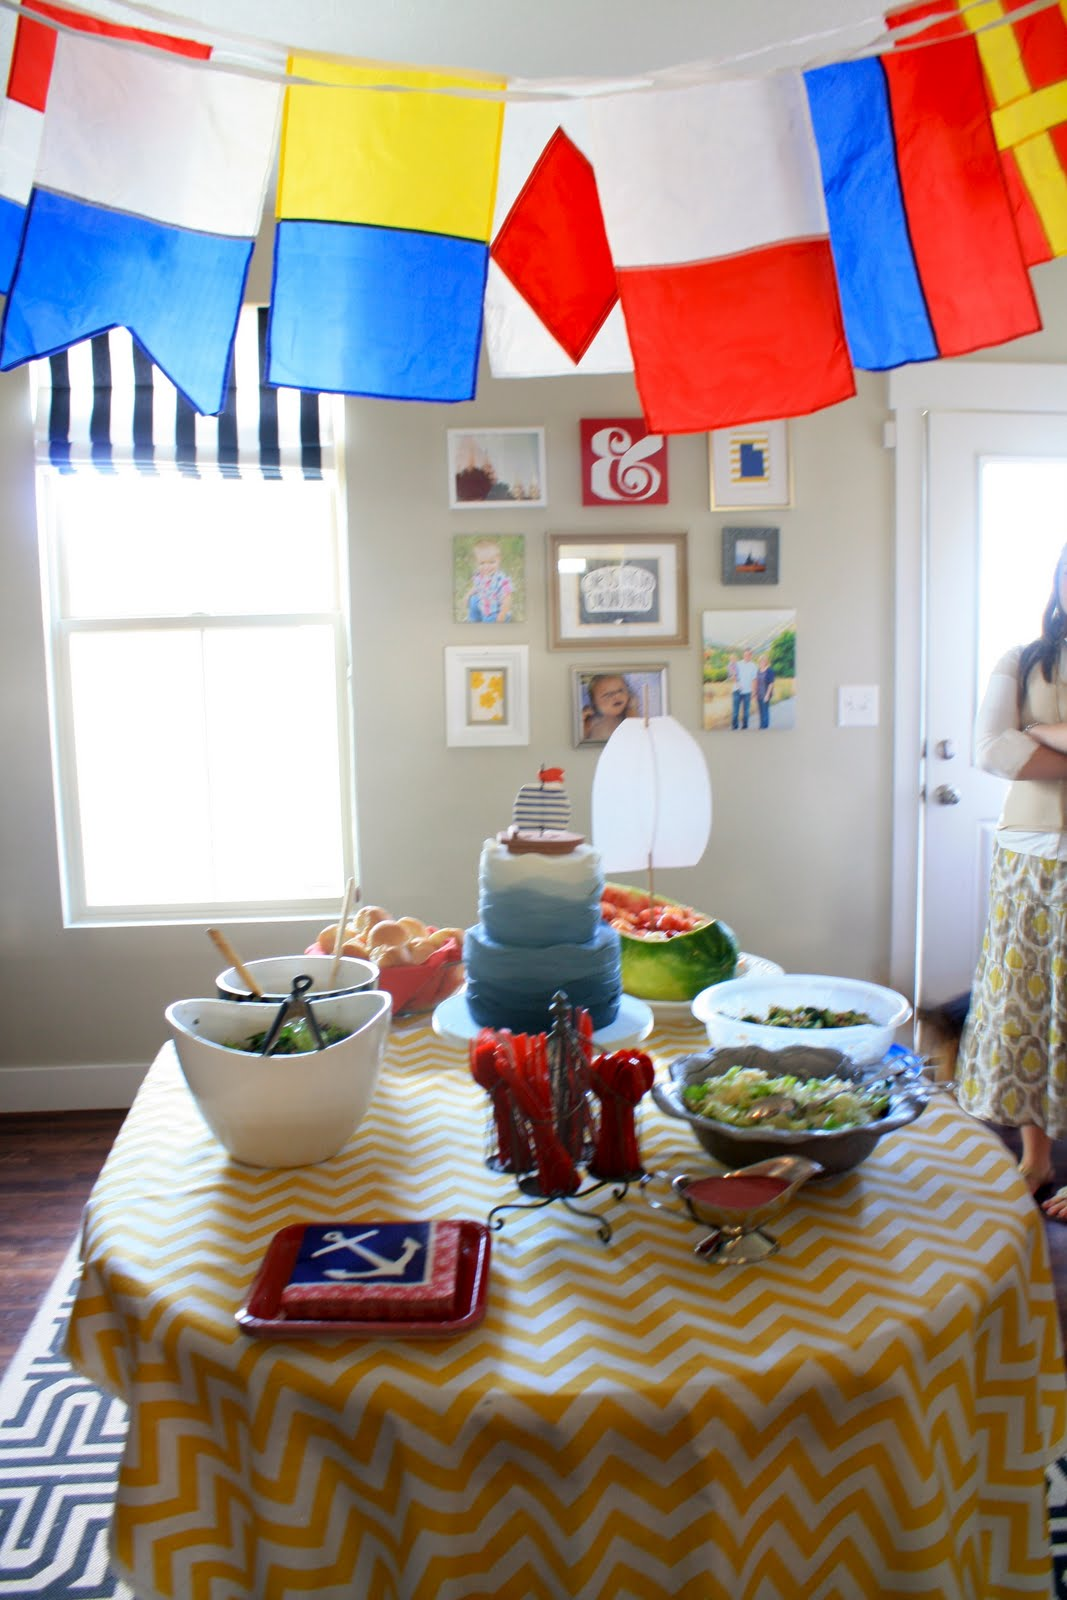 Jett's Nautical Birthday Party  House Of Jade Interiors Blog. Cheap Living Room Chair. Paintings For Living Room. Living Room Furniture Layout Tool. Retro Living Room Curtains. Inexpensive Living Room Furniture. Mid Century Modern Living Room Furniture. Coastal Decor Living Room. Used Living Room Set